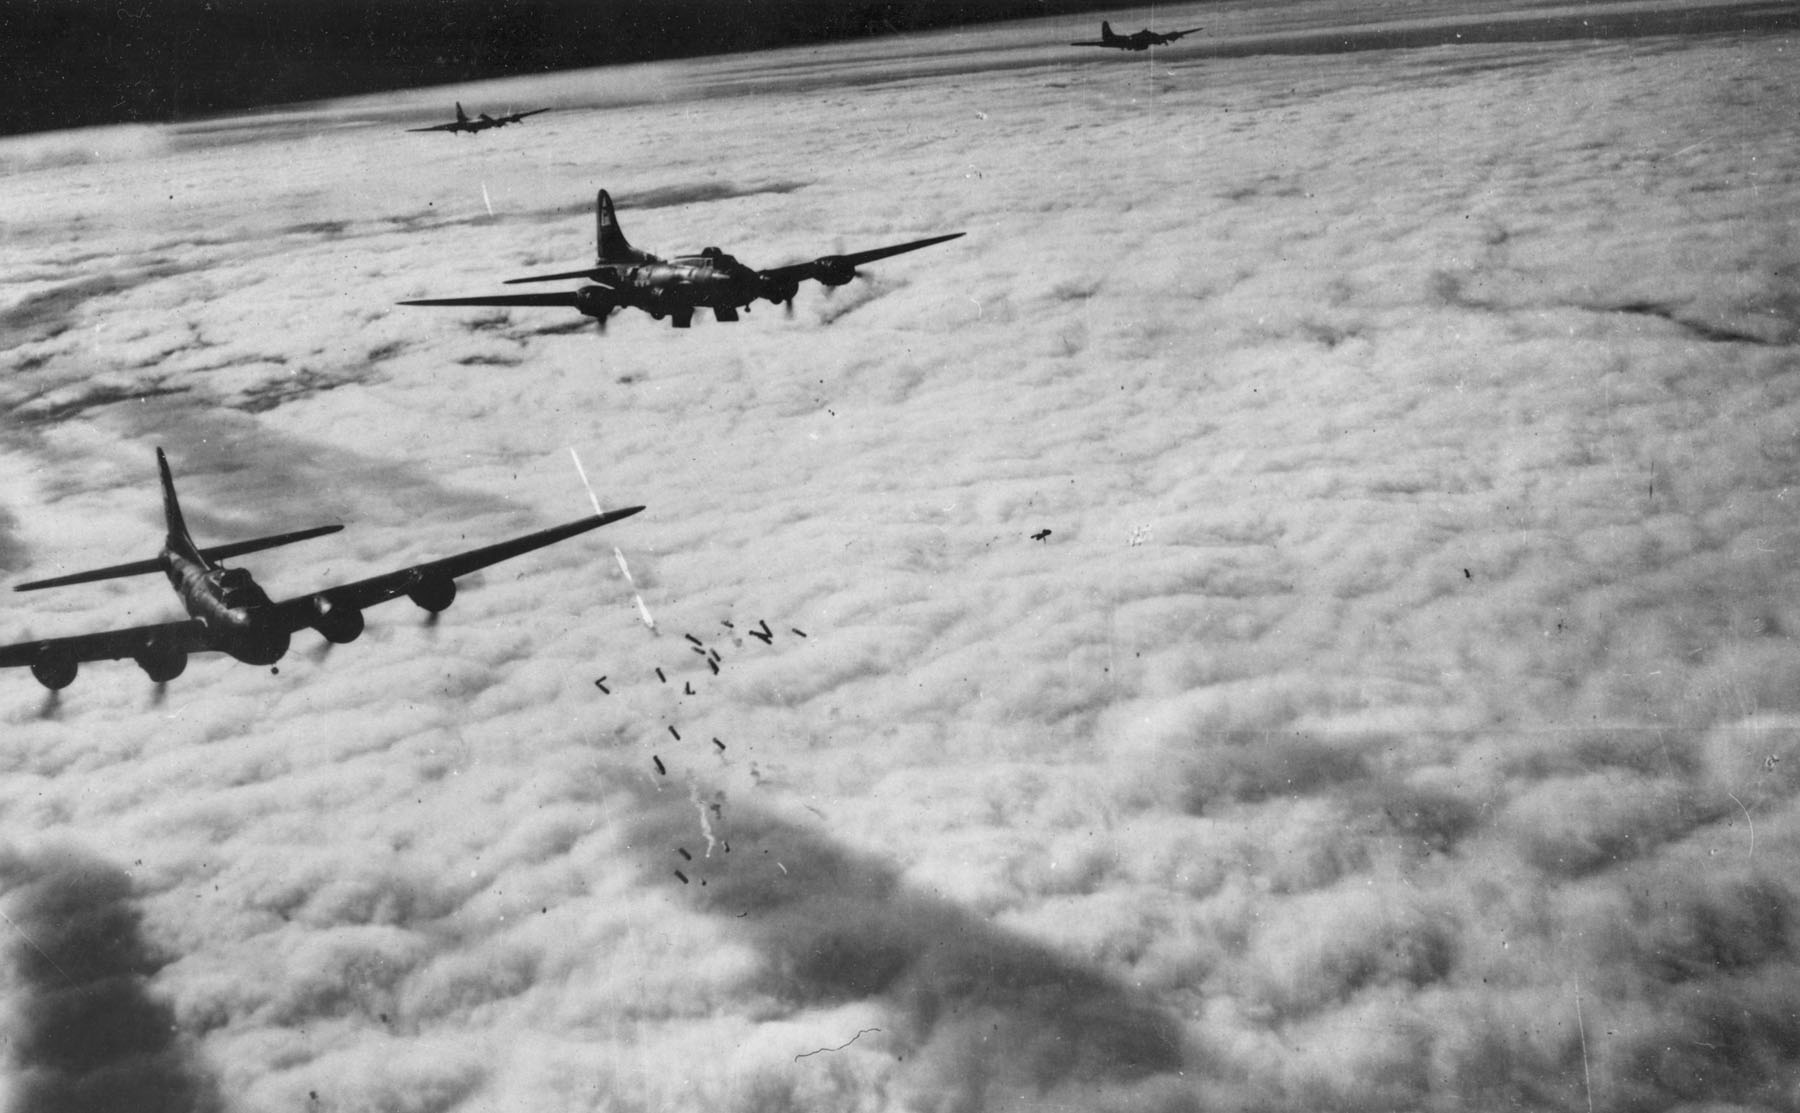 Boeing B-17F radar bombing through clouds over Bremen, Germany, on Nov. 13, 1943. (U.S. Air Force photo)